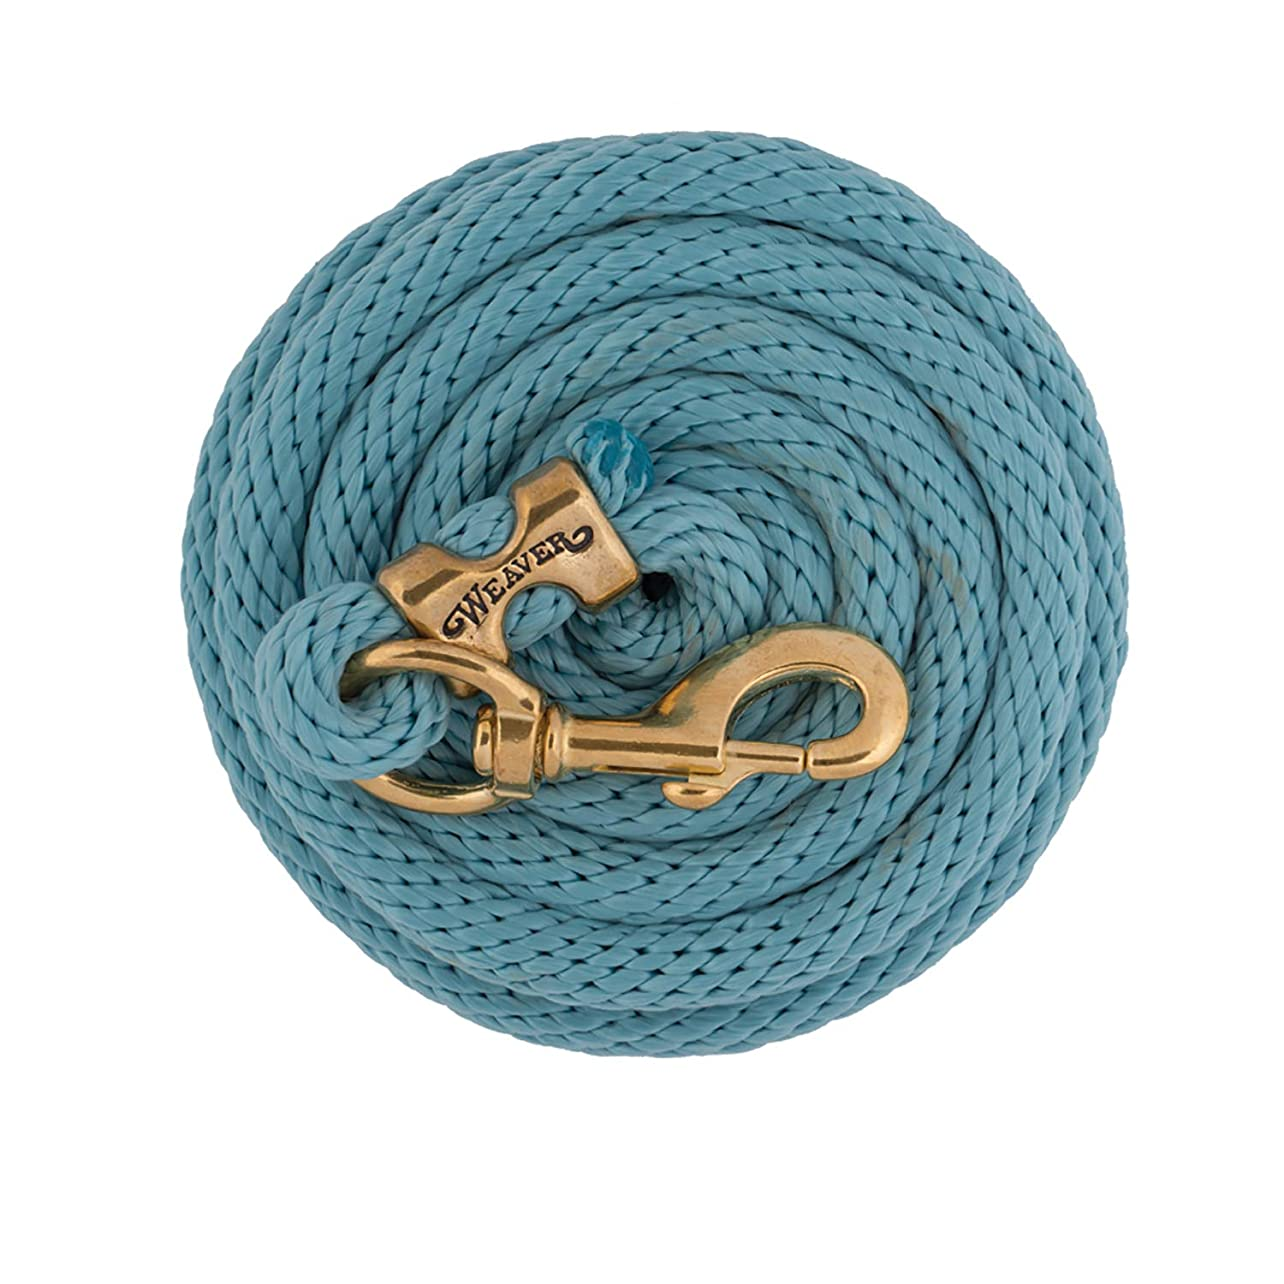 Weaver Leather Poly Lead Rope with a Solid Brass 225 Snap pfeanwpxqbe40